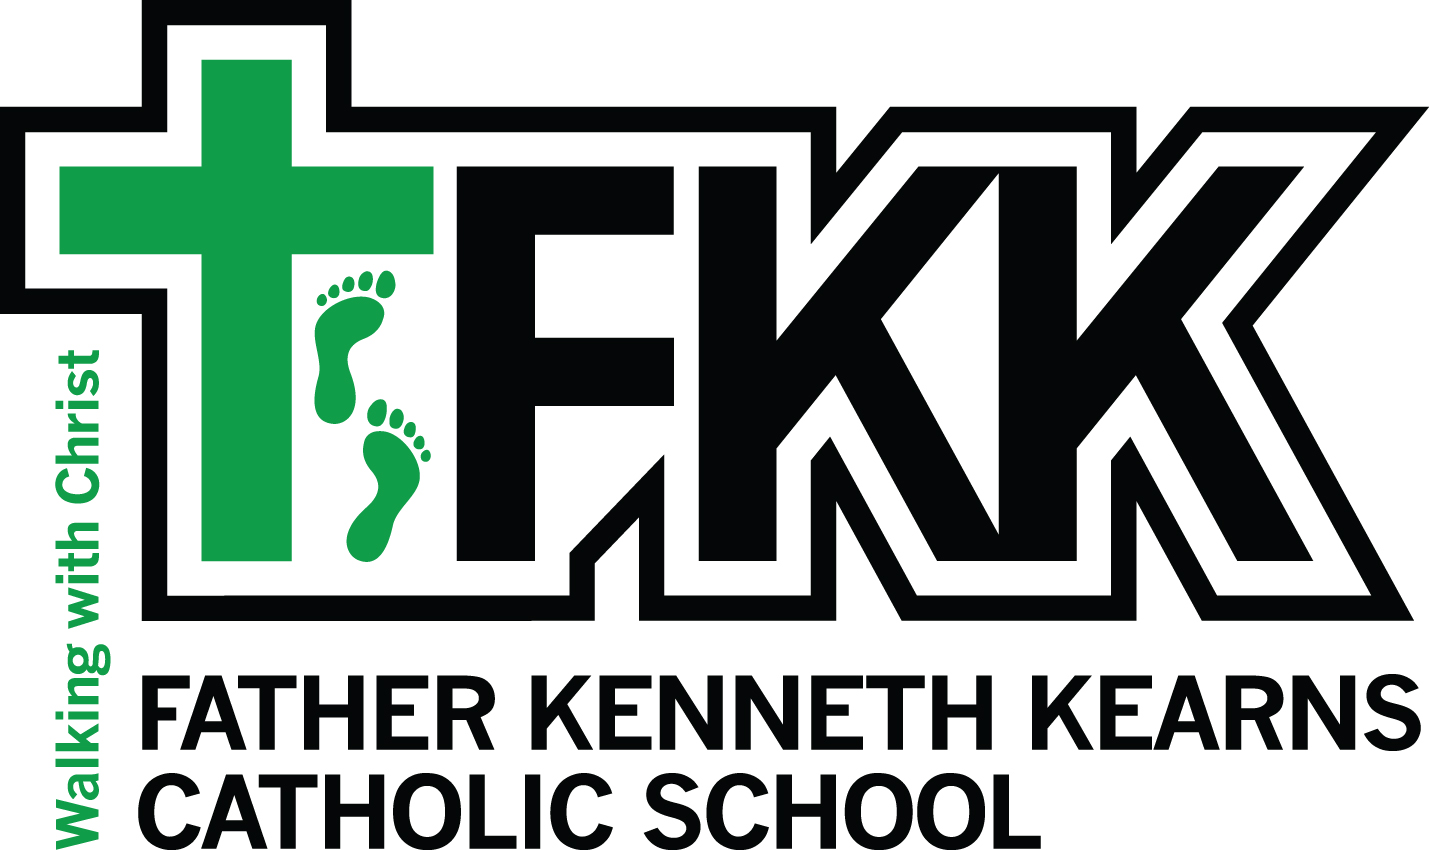 Father Kenneth Kearns Catholic School